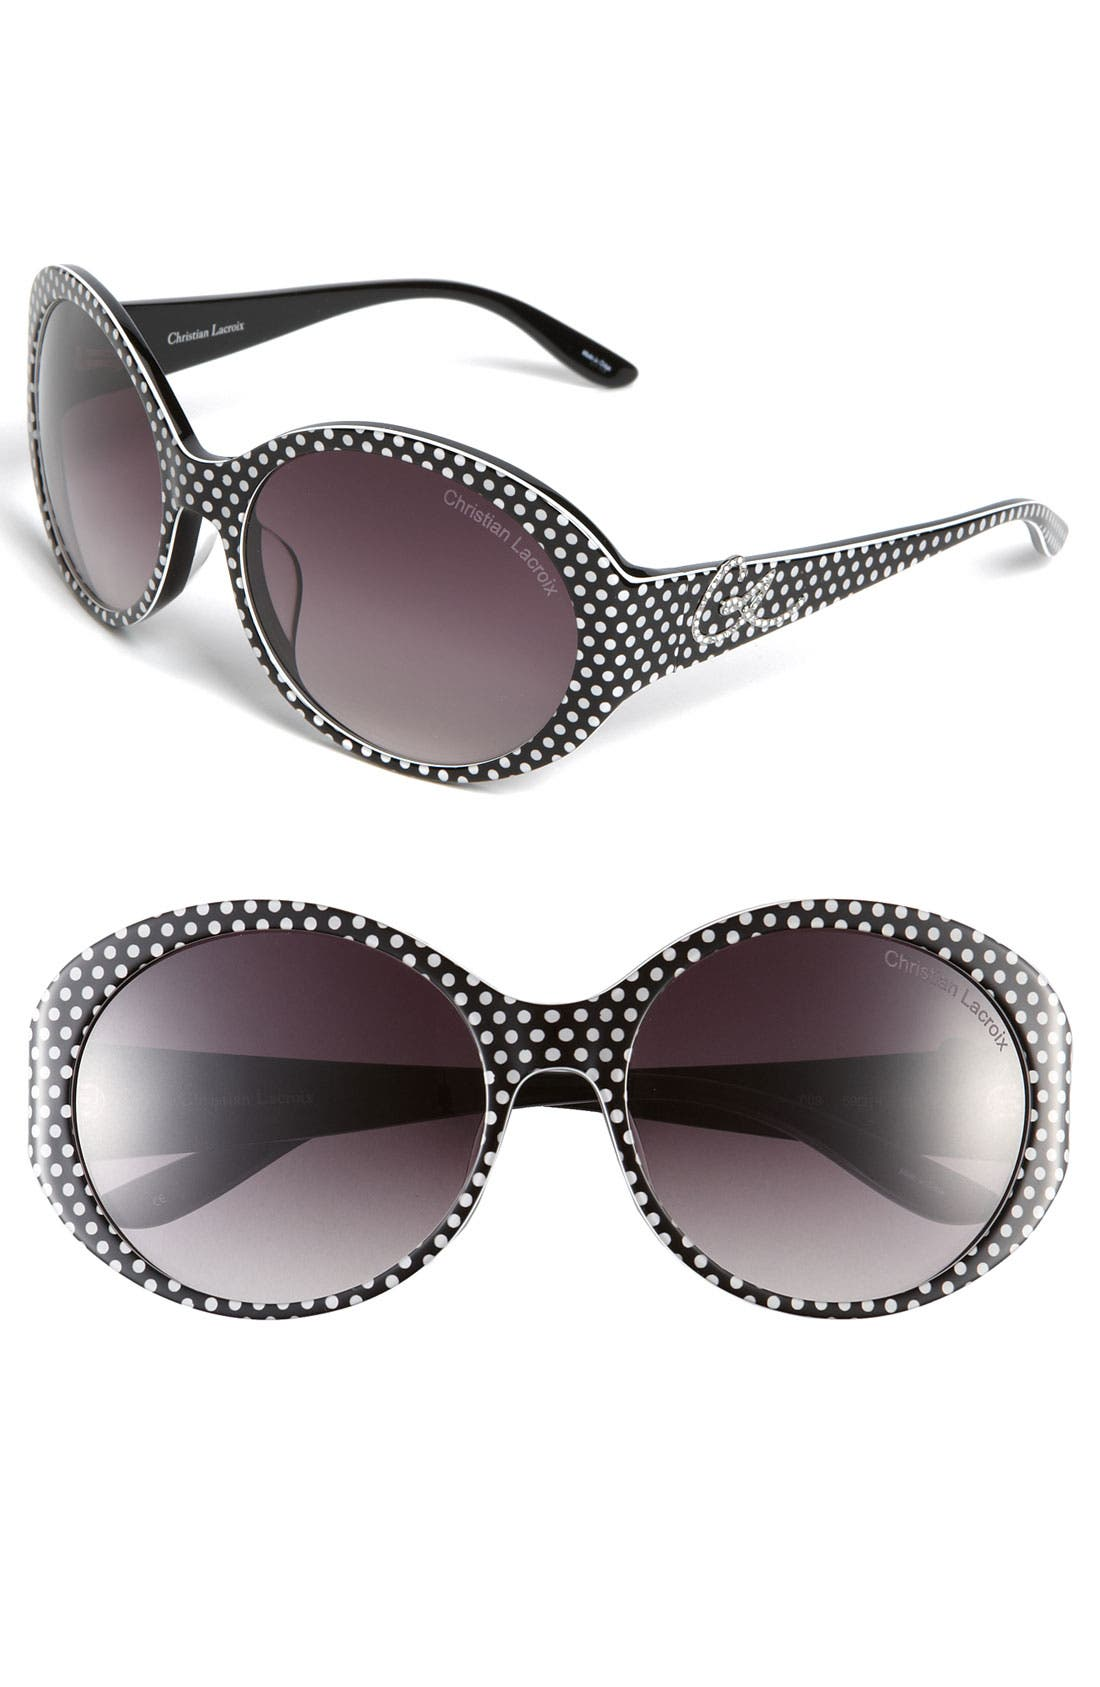 Alternate Image 1 Selected - Christian Lacroix Large Sunglasses